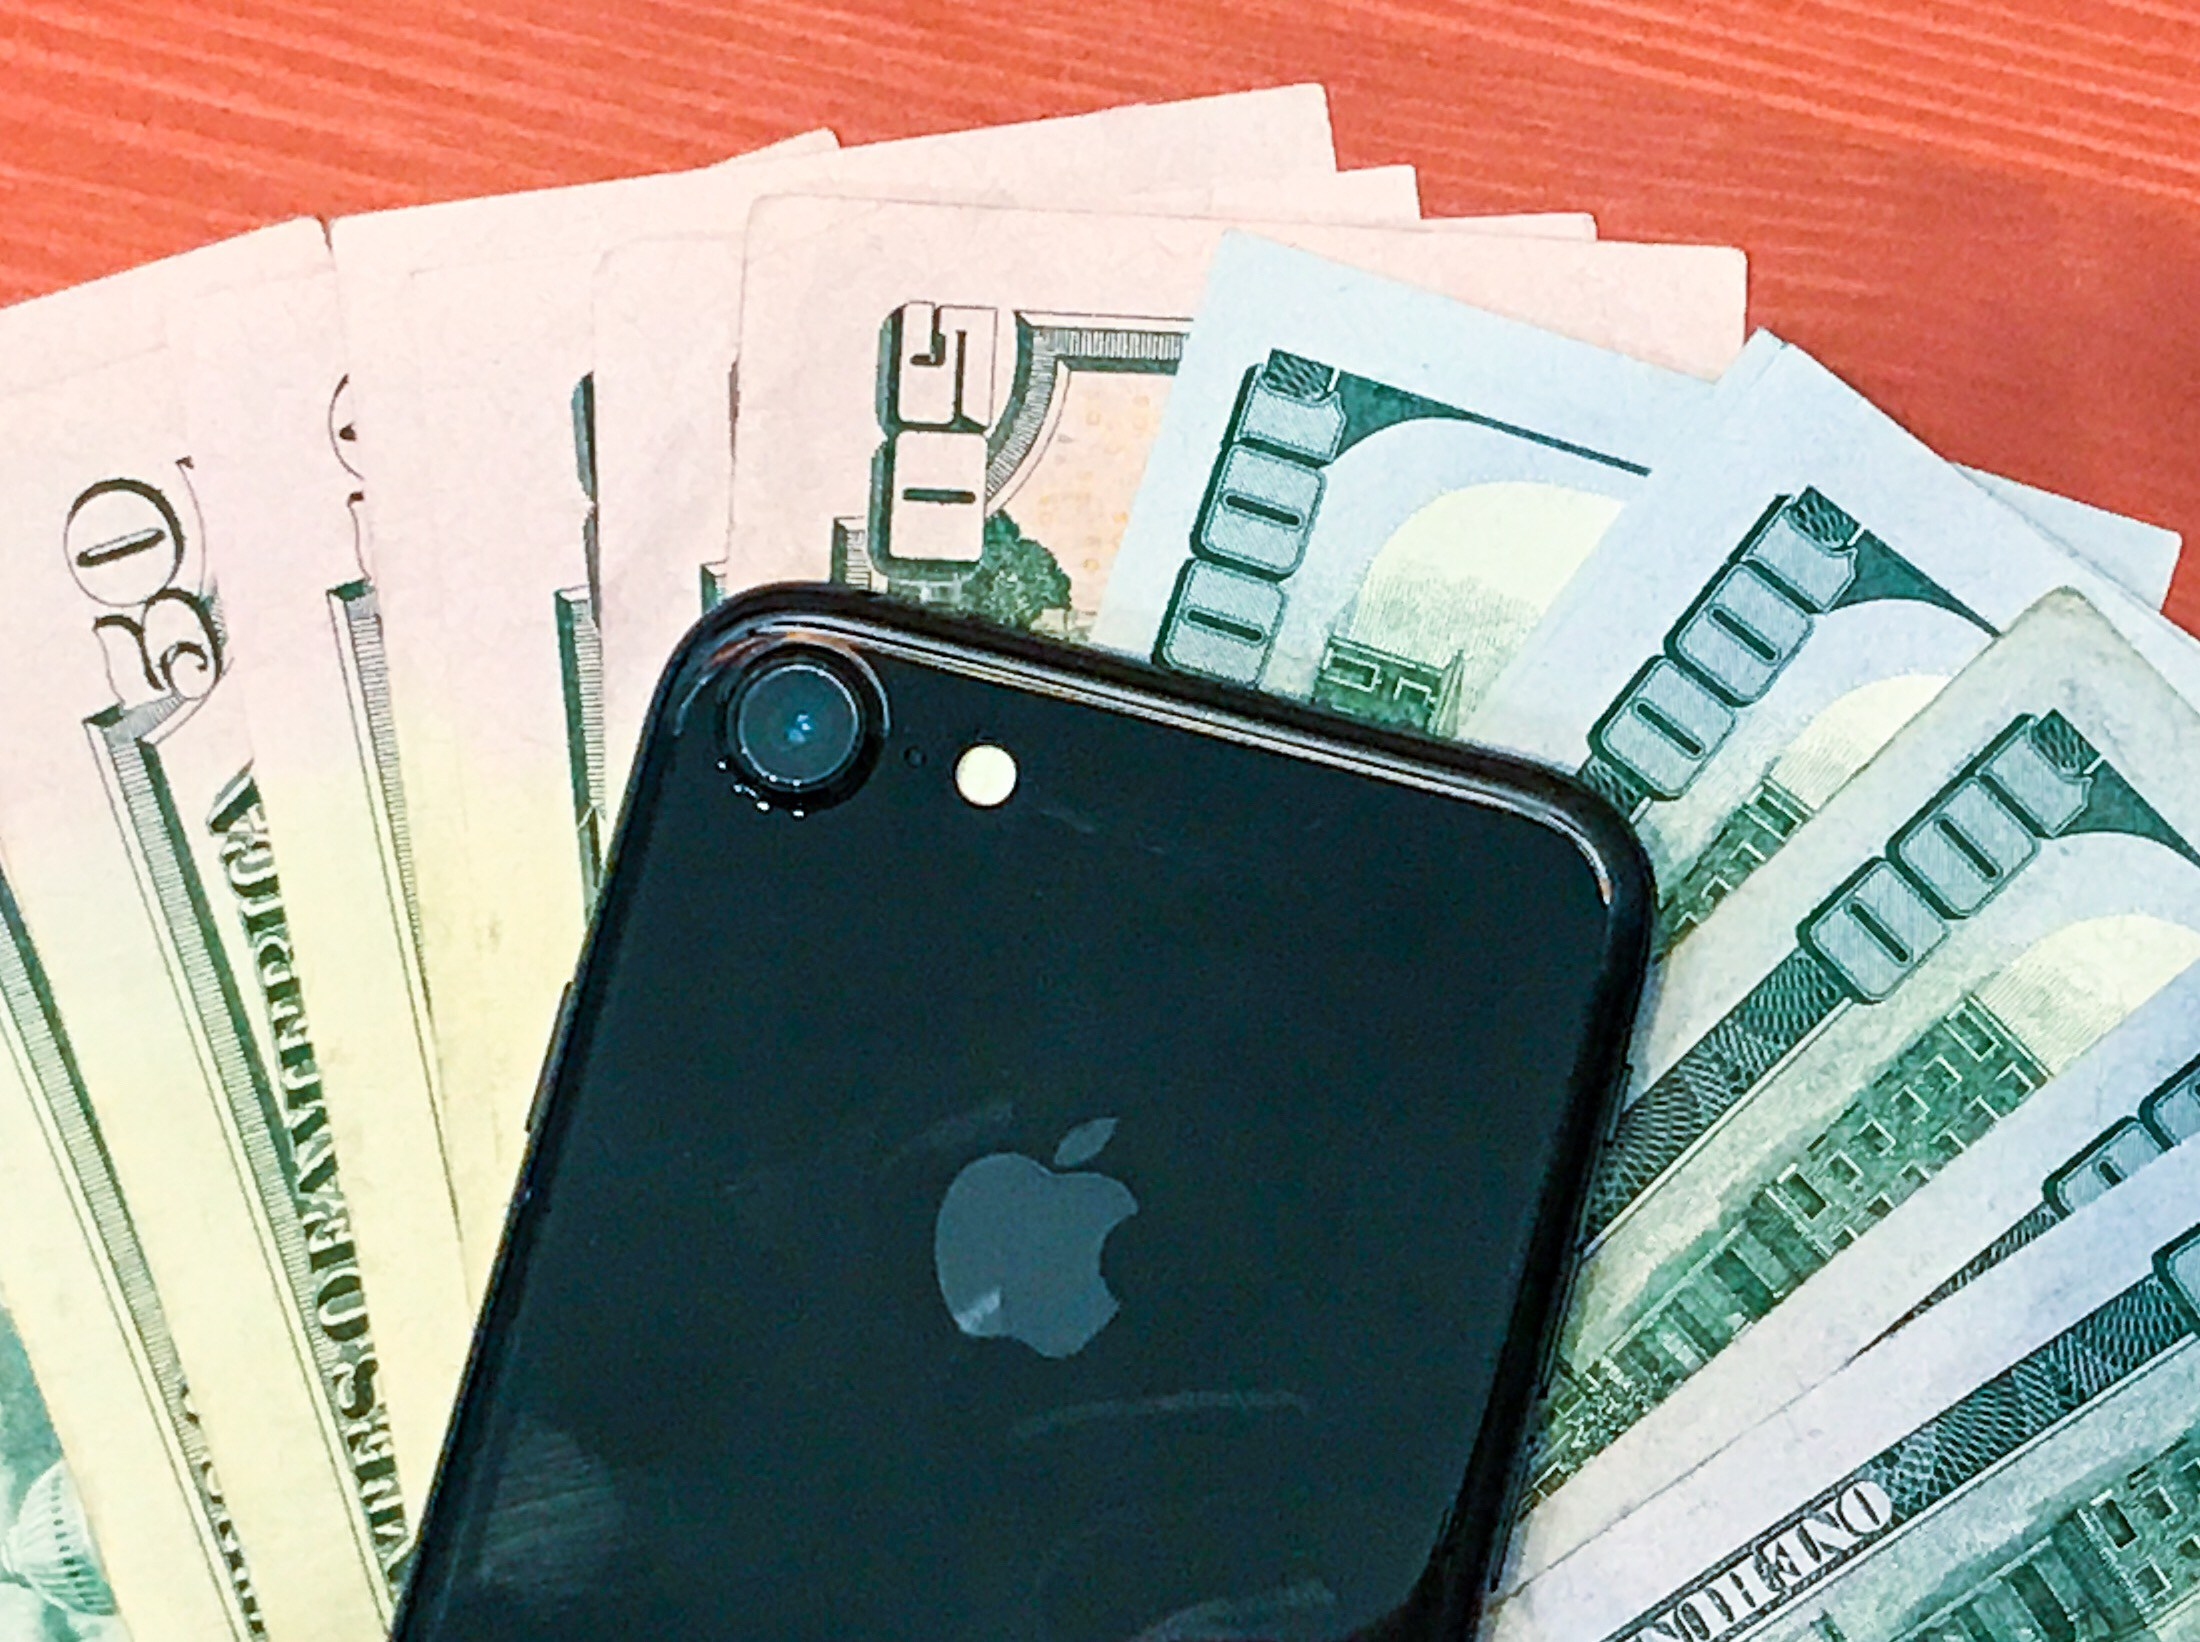 Could Apple charge $1,200 to $1,500 for the iPhone 8?